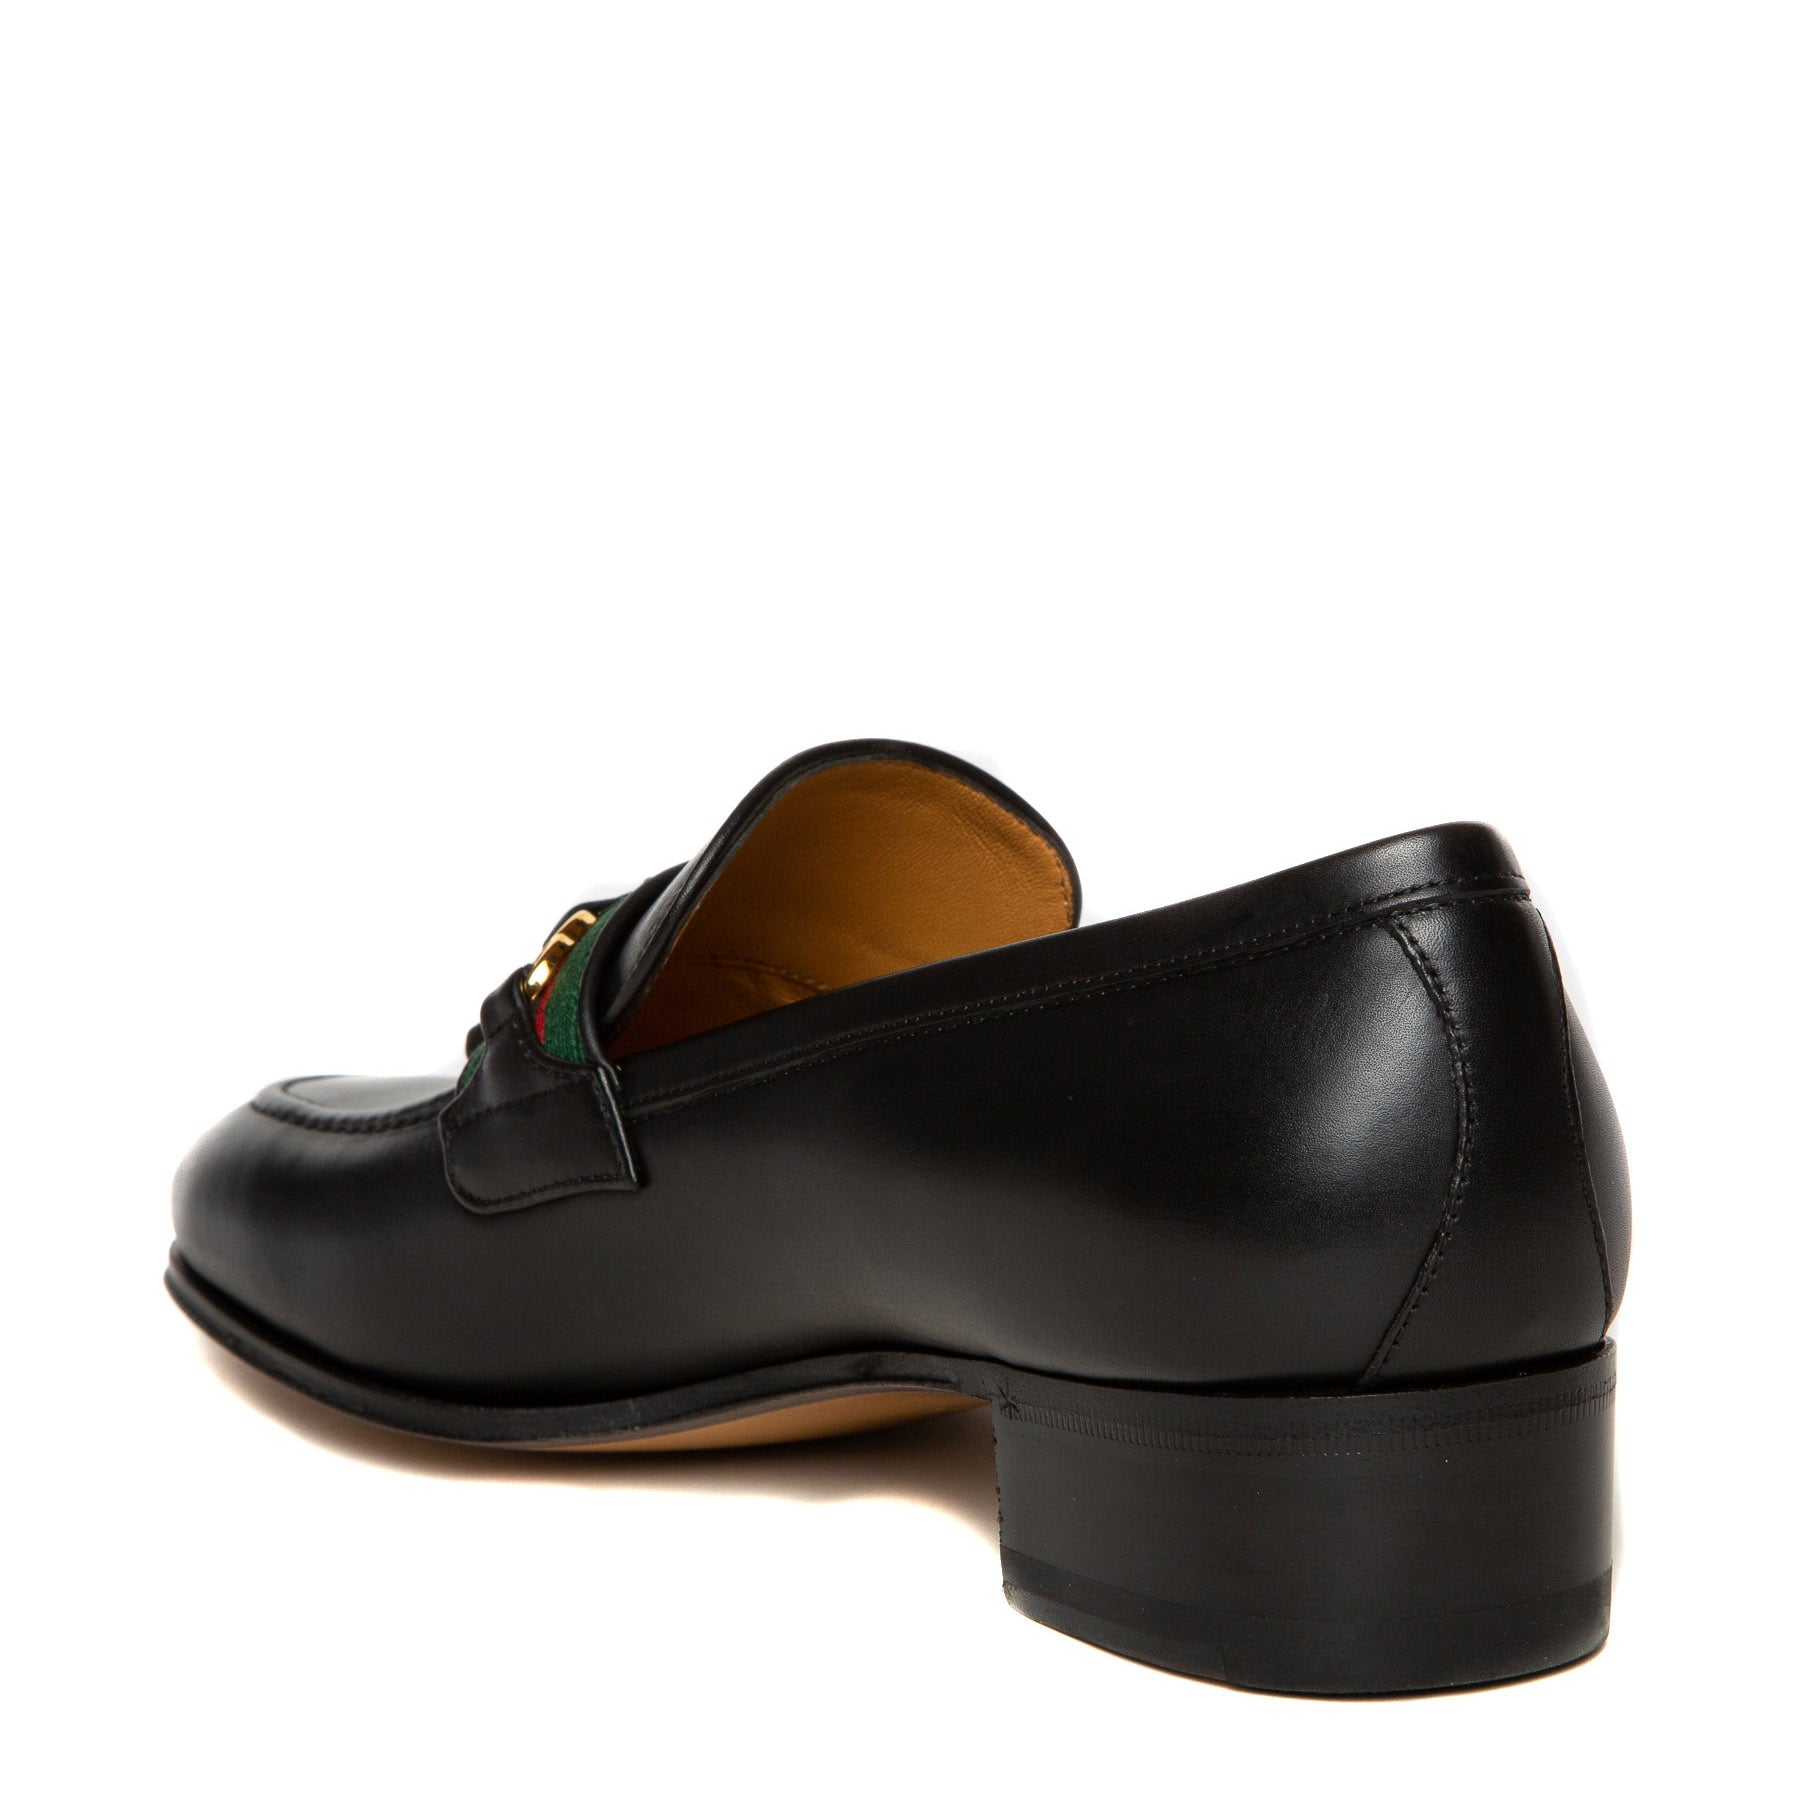 black leather Gucci loafers back